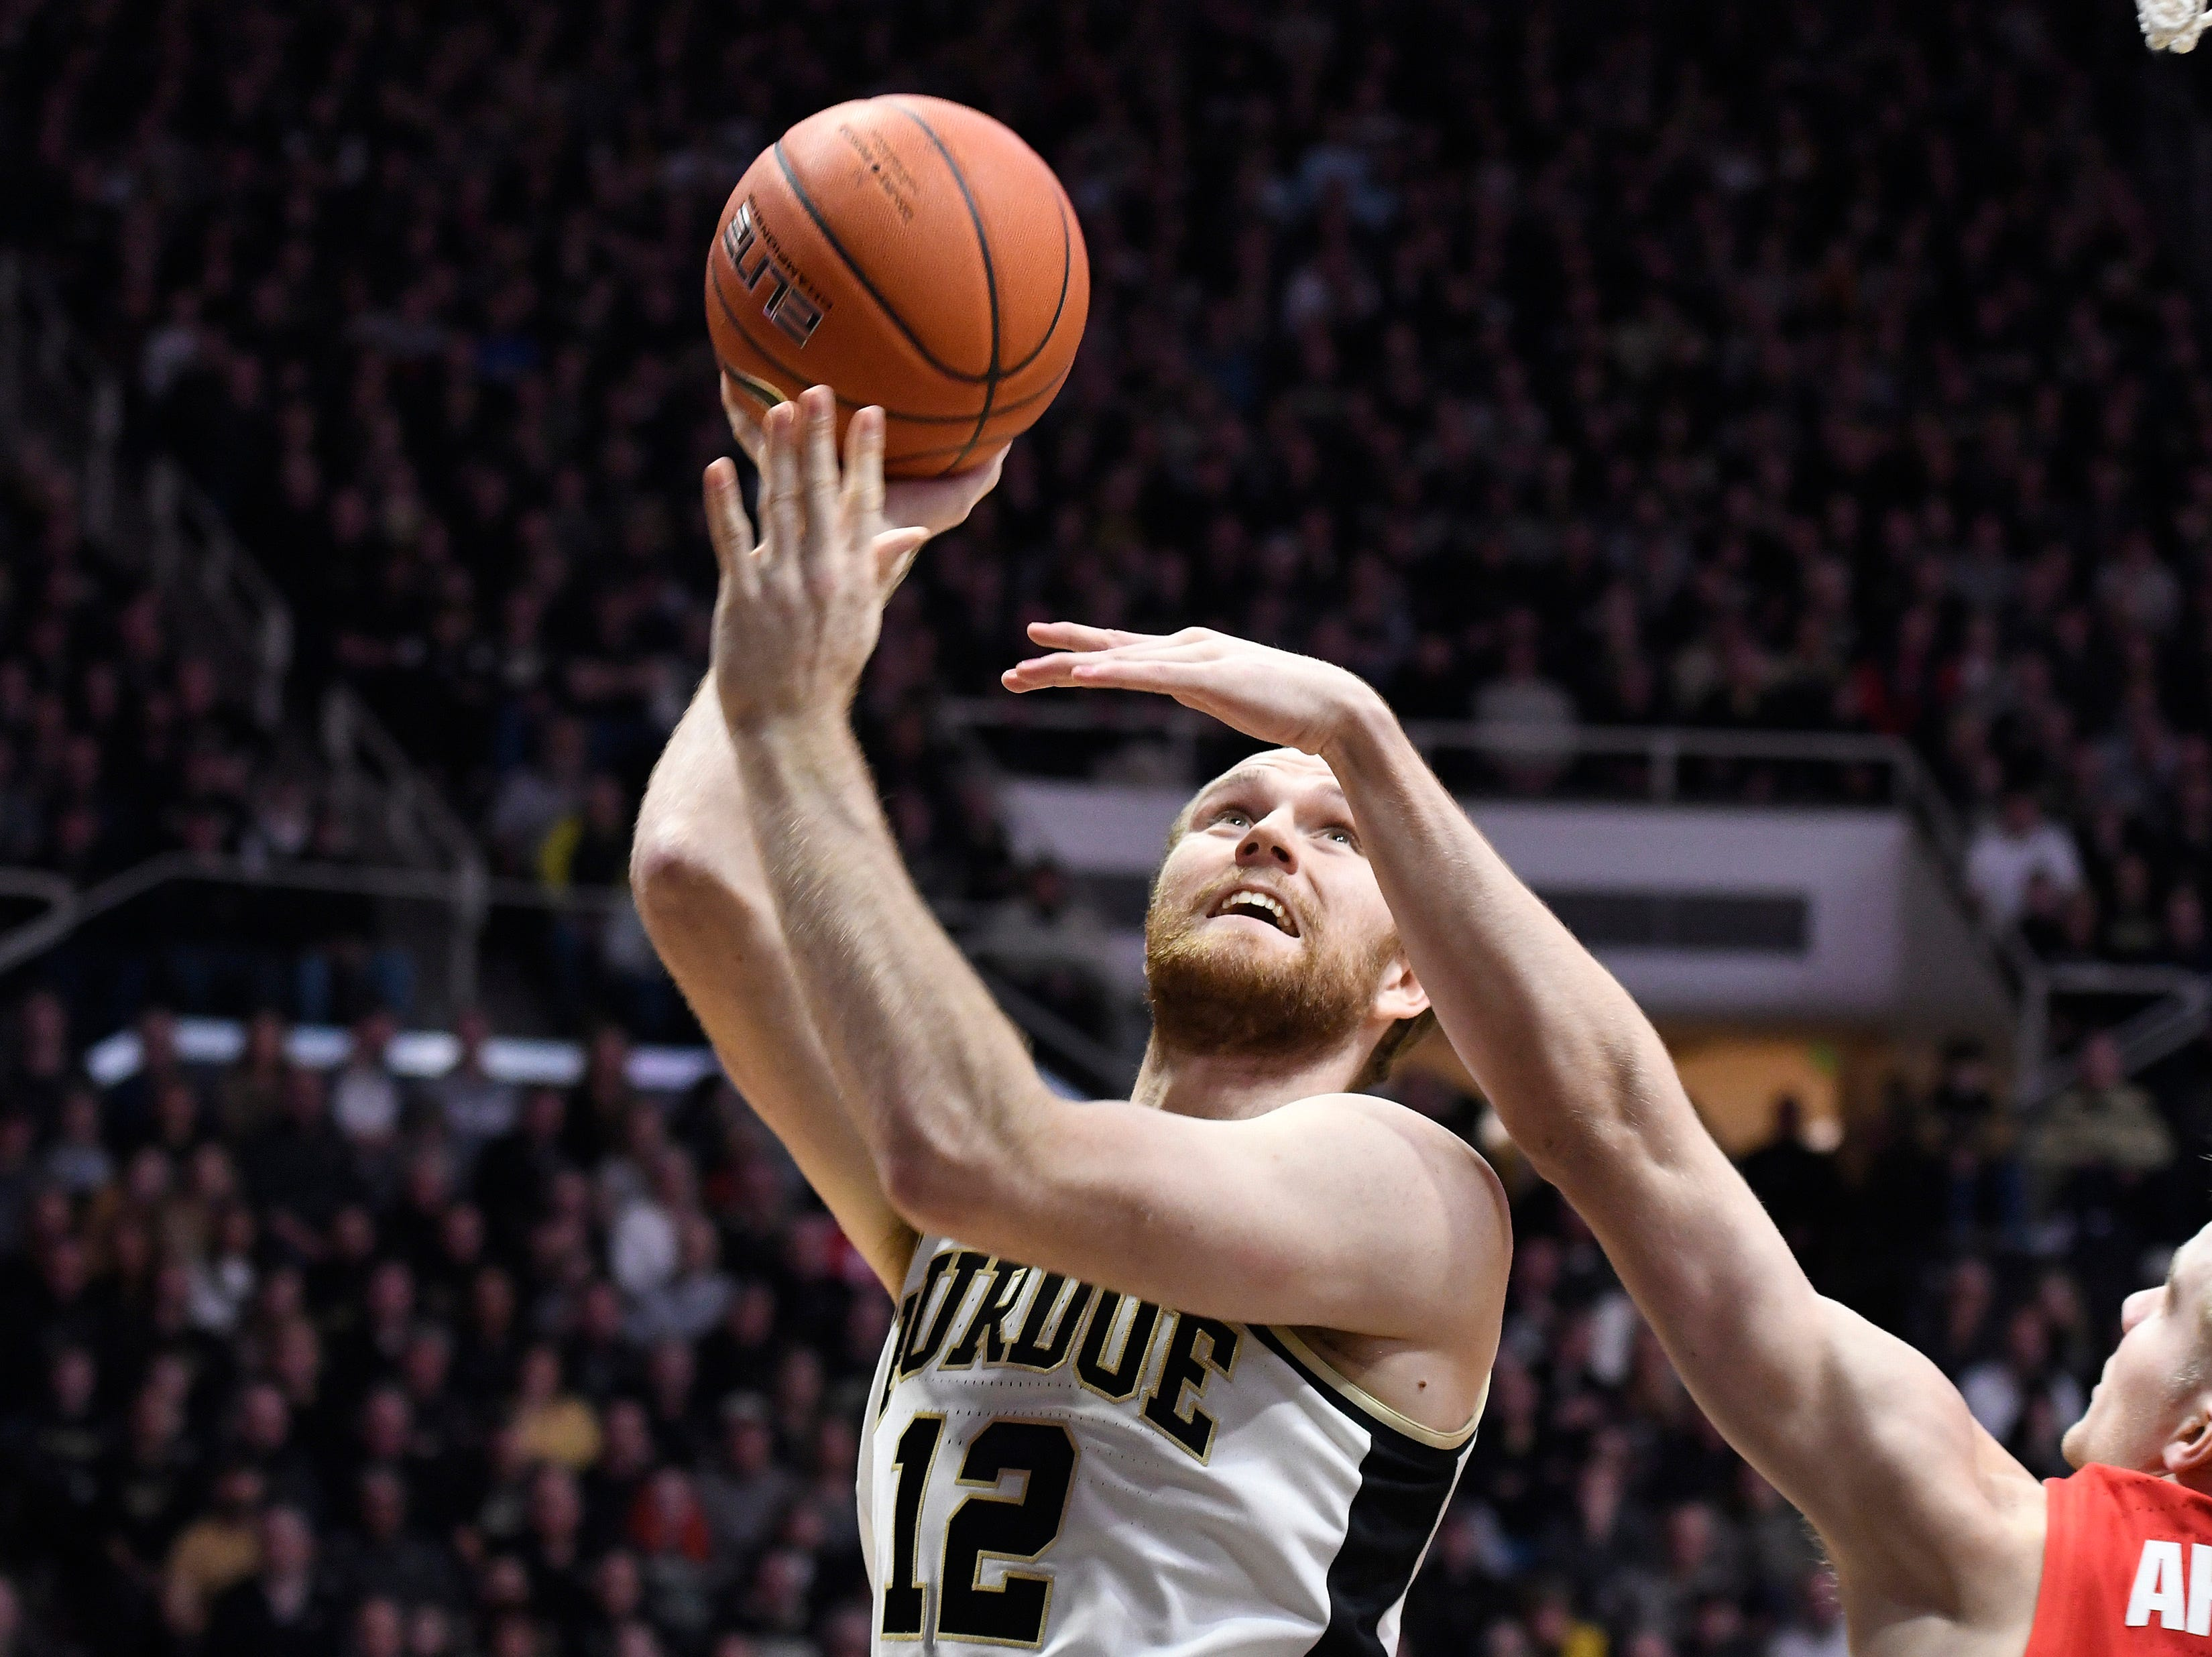 Mar 2, 2019; West Lafayette, IN, USA; Purdue Boilermakers forward Evan Boudreaux (12) drives past the defender for a layup in the 2nd half at Mackey Arena. Mandatory Credit: Sandra Dukes-USA TODAY Sports